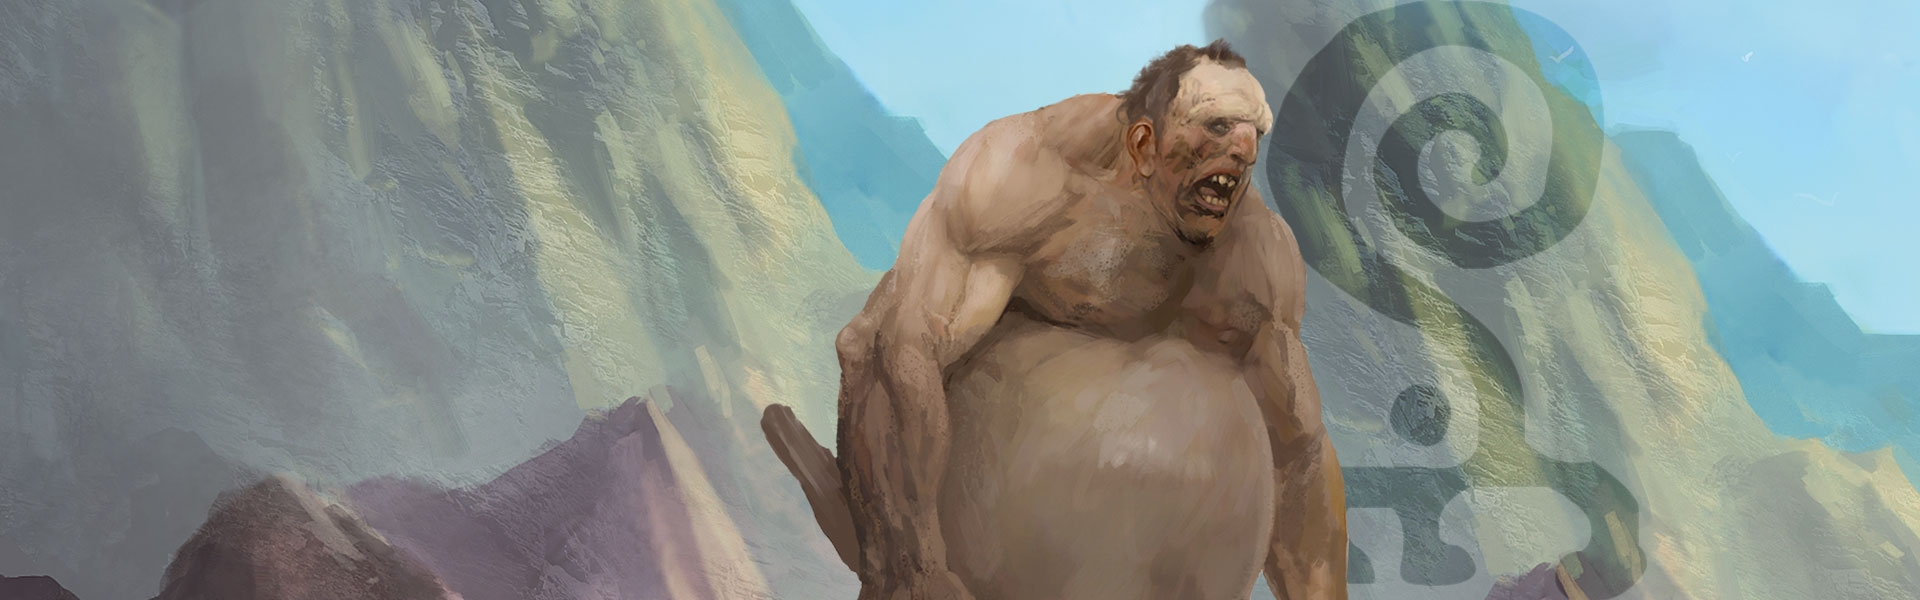 Monsters -- Hill Giants